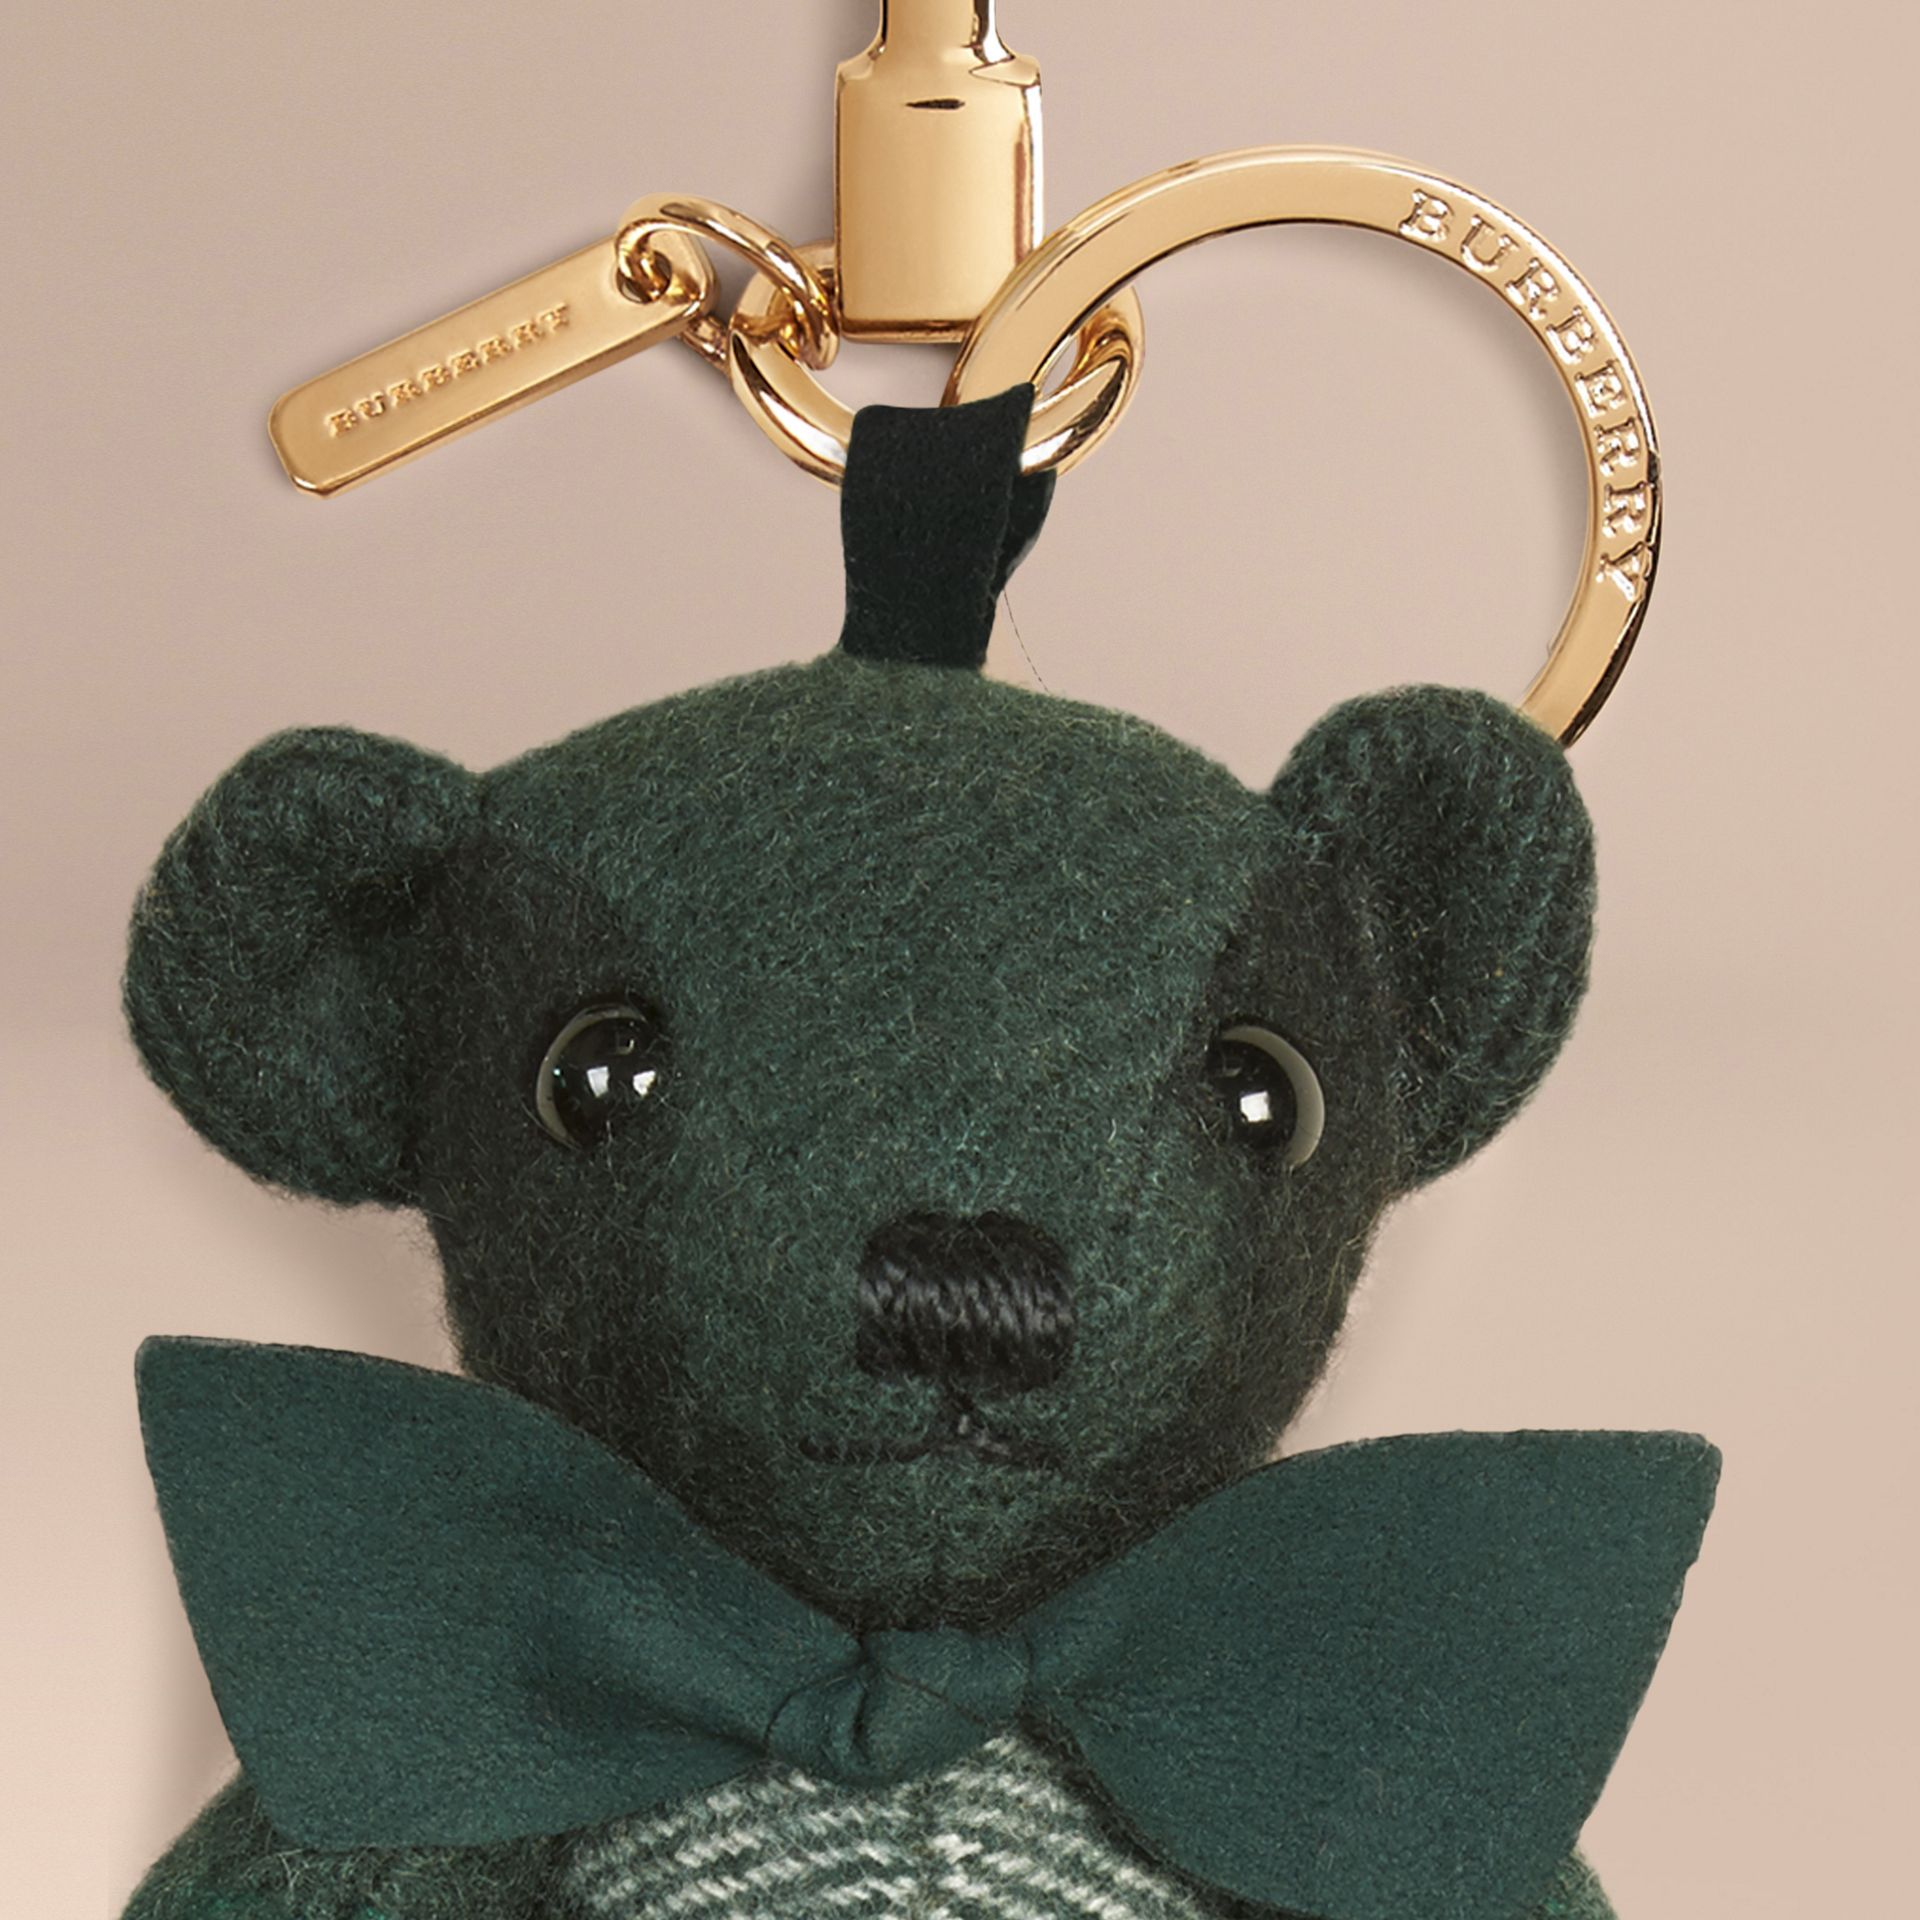 Thomas Bear Charm in Check Cashmere in Dark Forest Green - Men | Burberry - gallery image 2